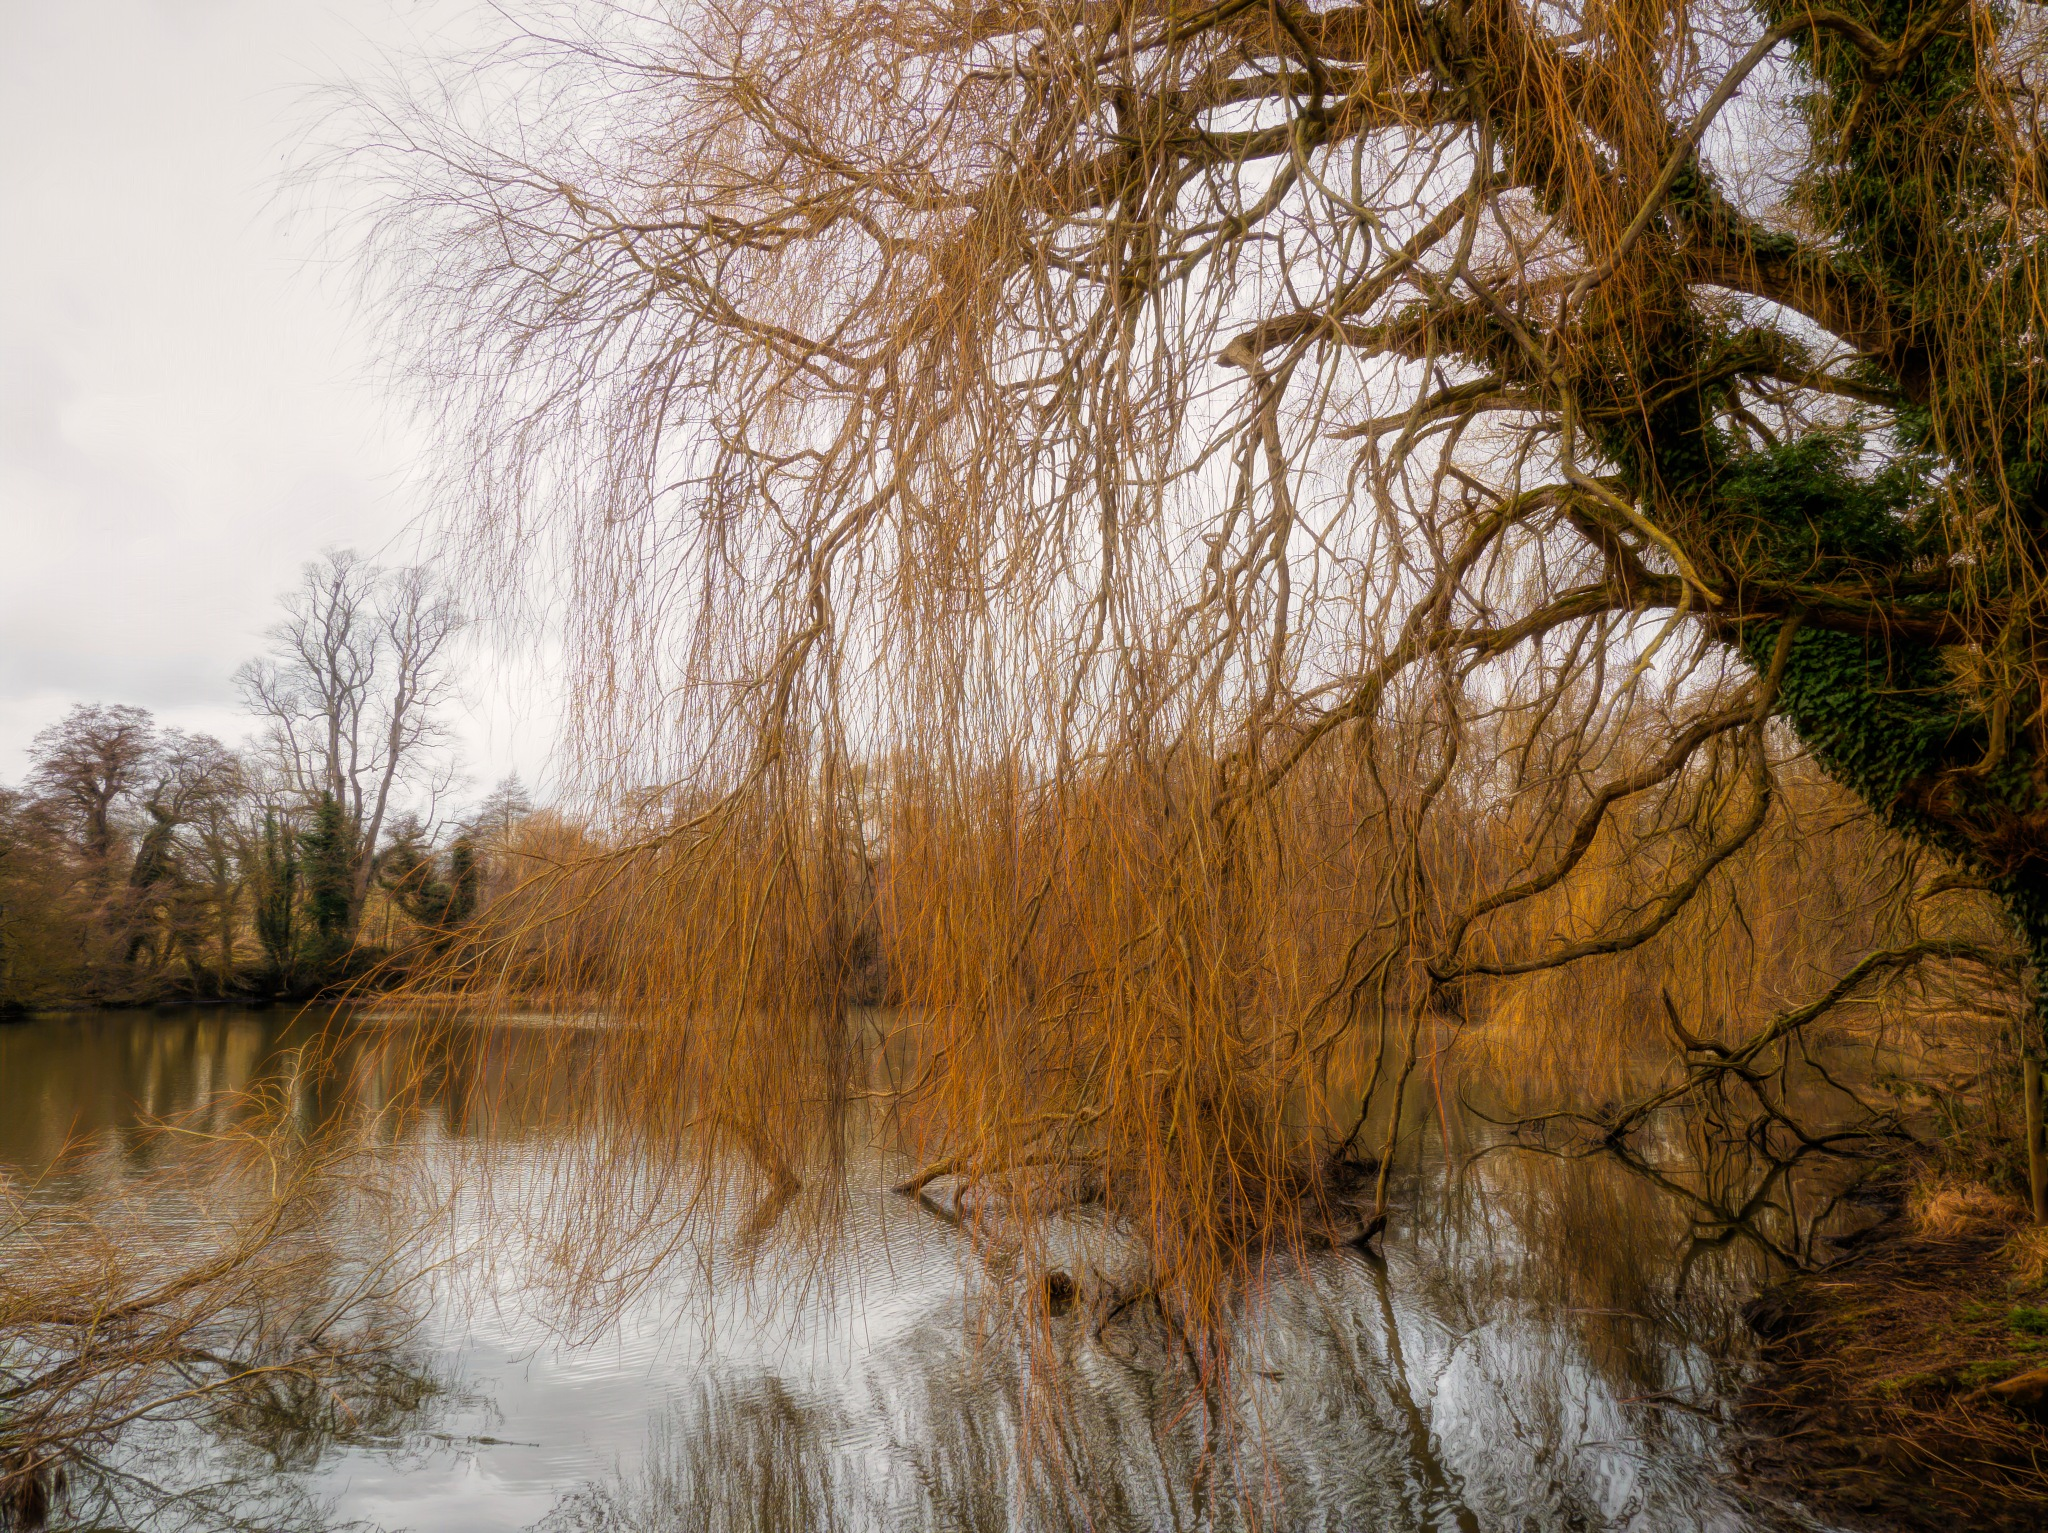 Weeping Willow by Sarah Walters